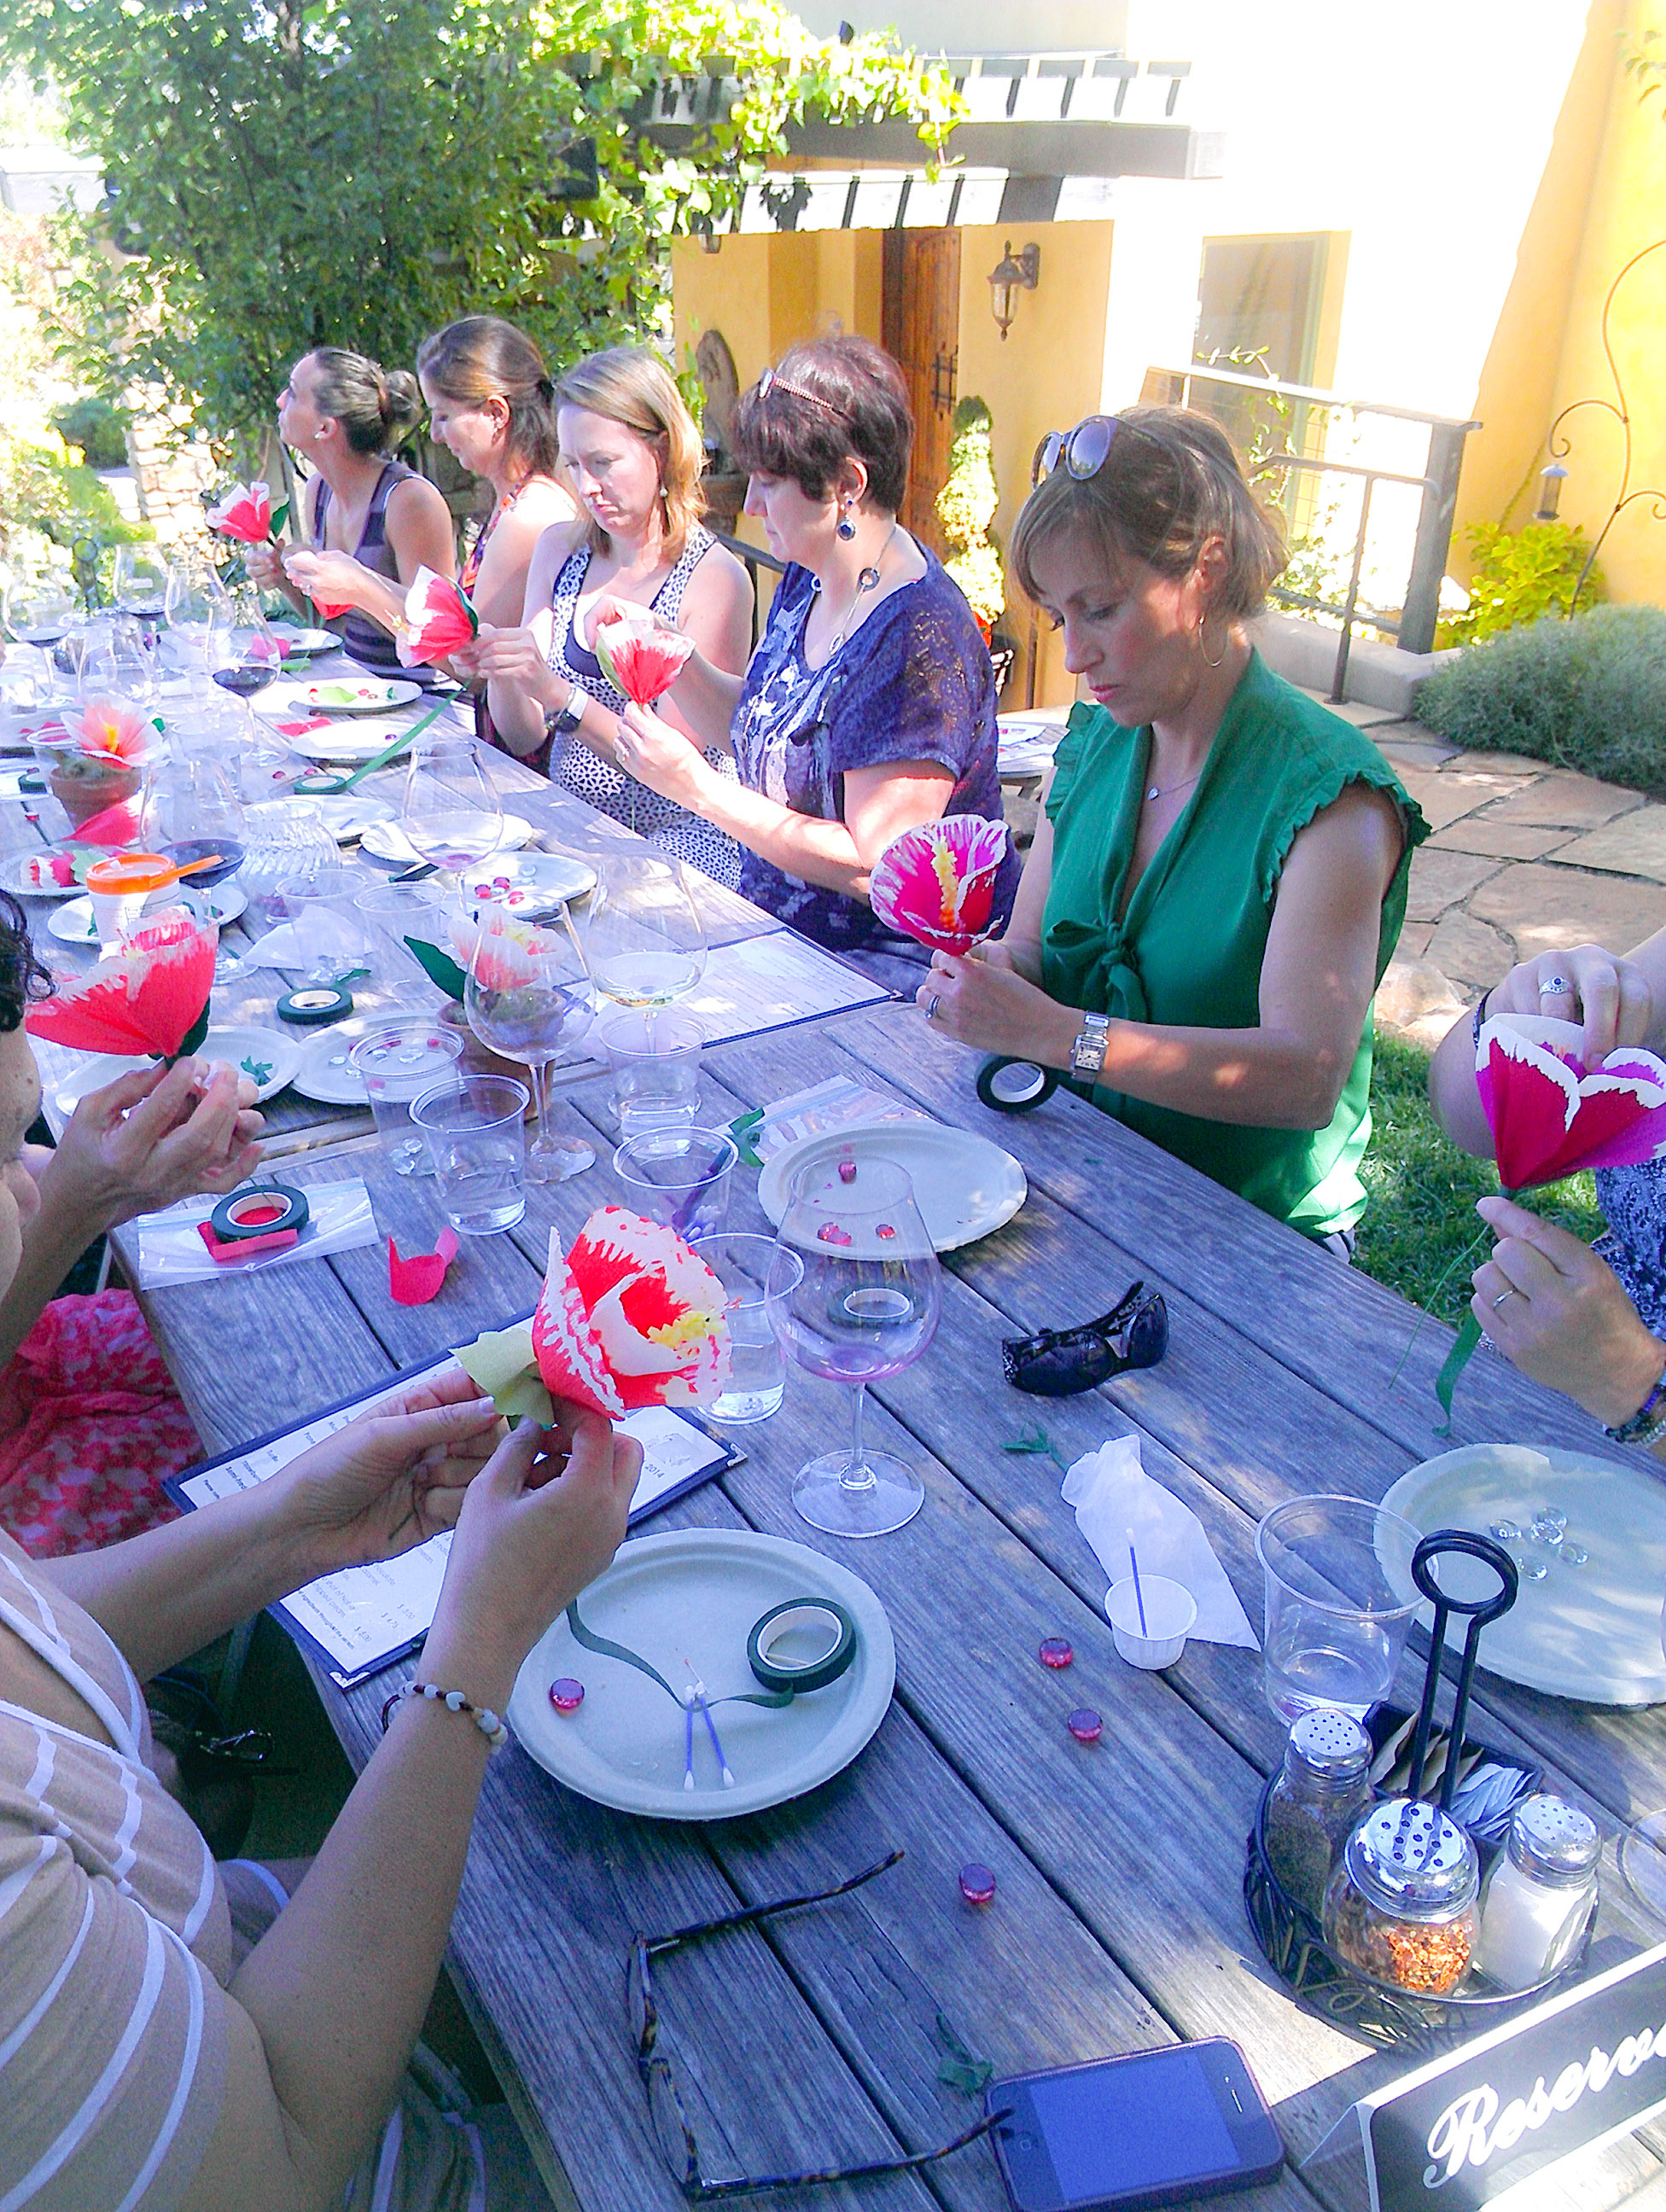 Flower crafting at Dancin Vineyards—making memories.